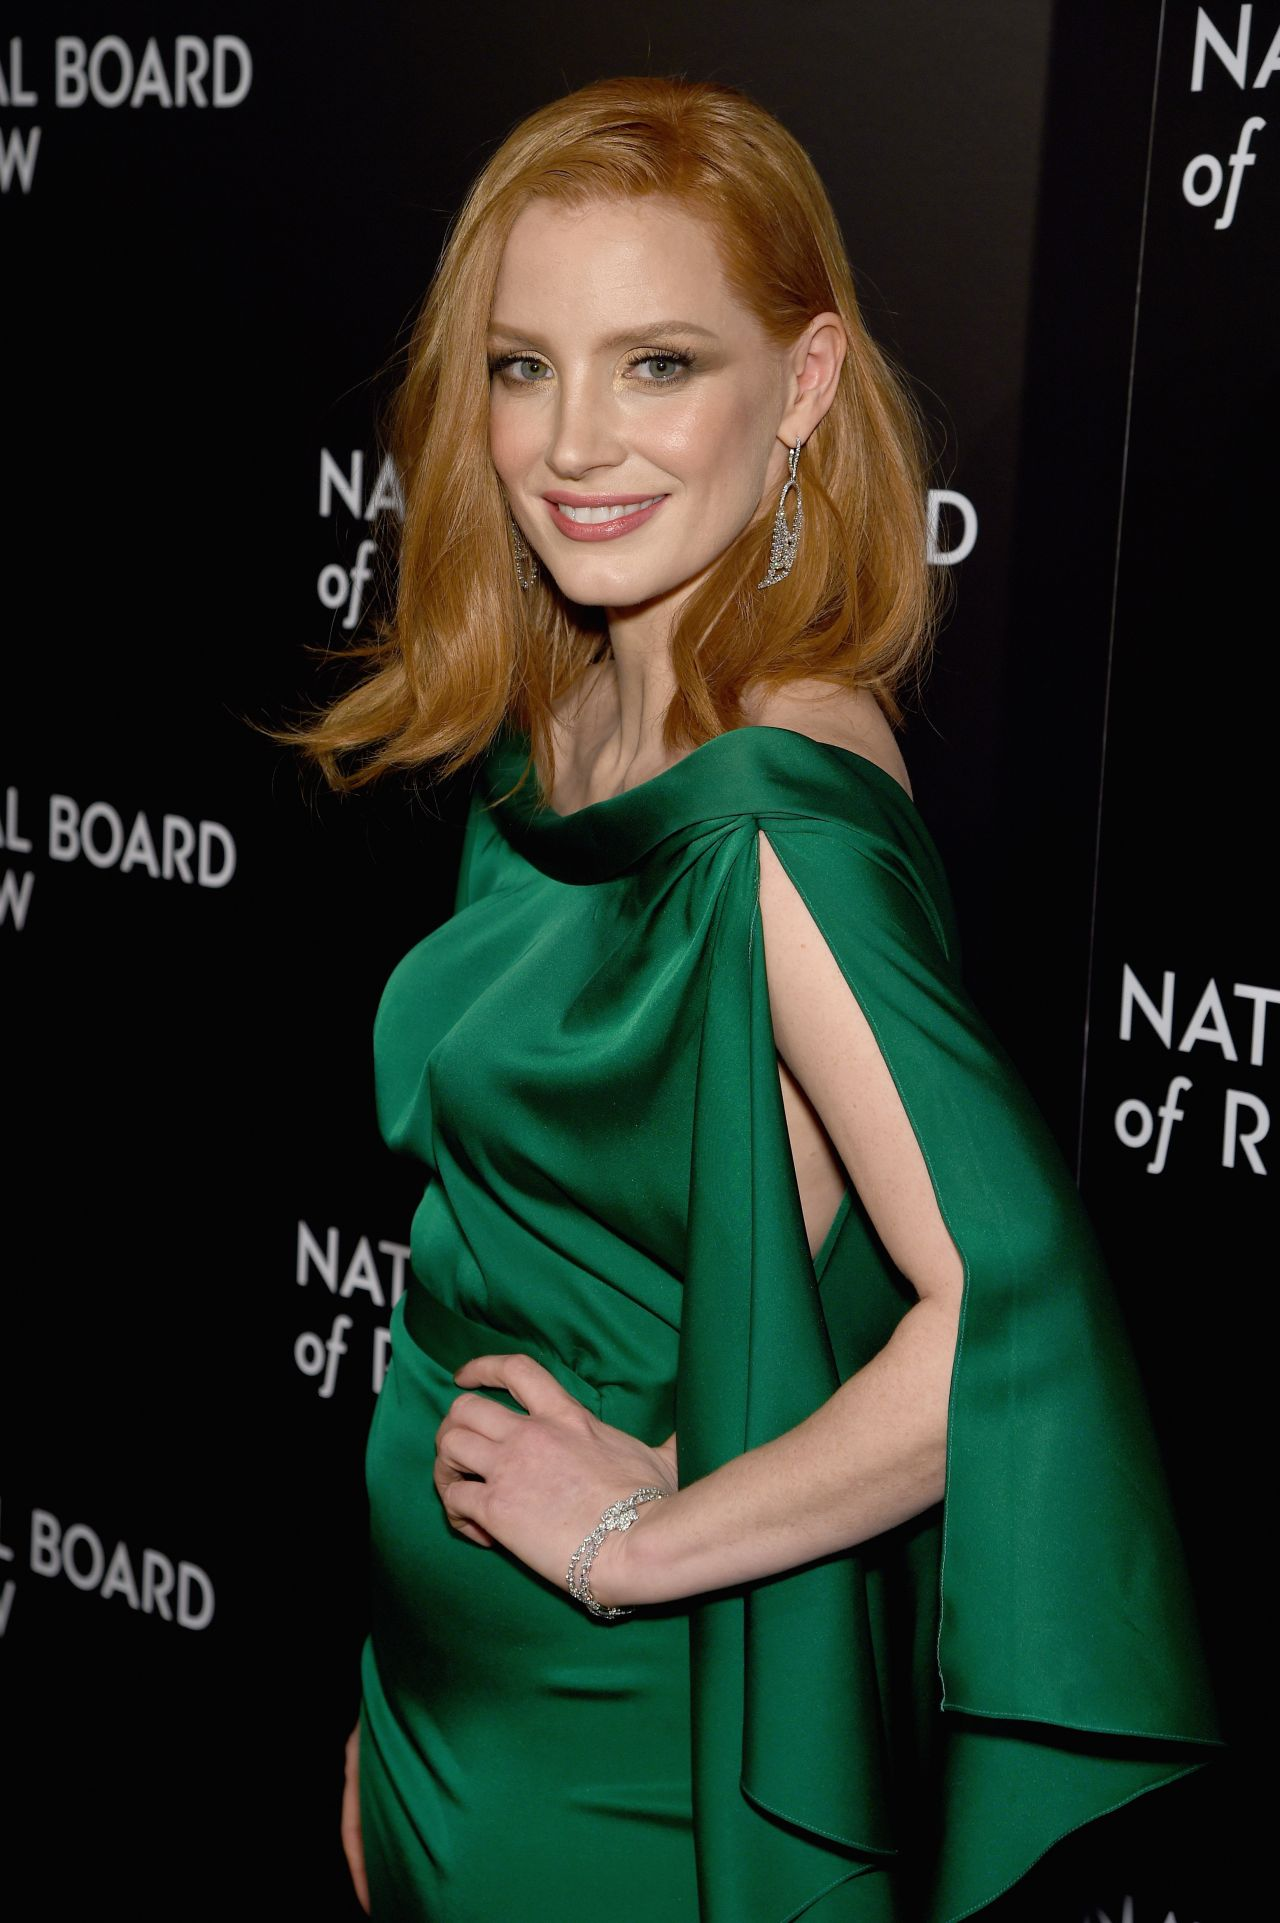 jessica-chastain-2015-national-board-of-review-gala-in-new-york-city-3